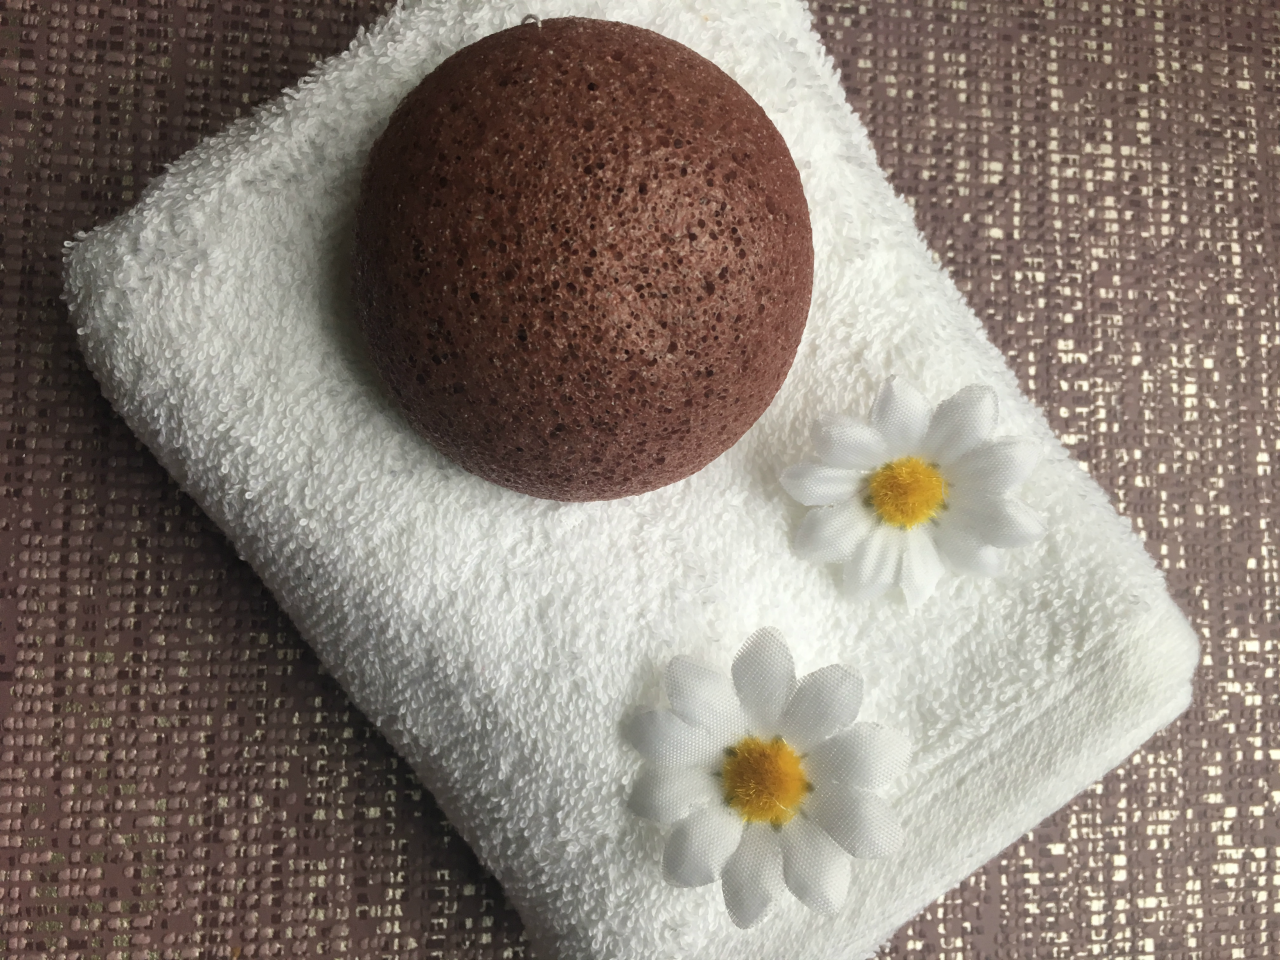 The Konjac Sponge Review